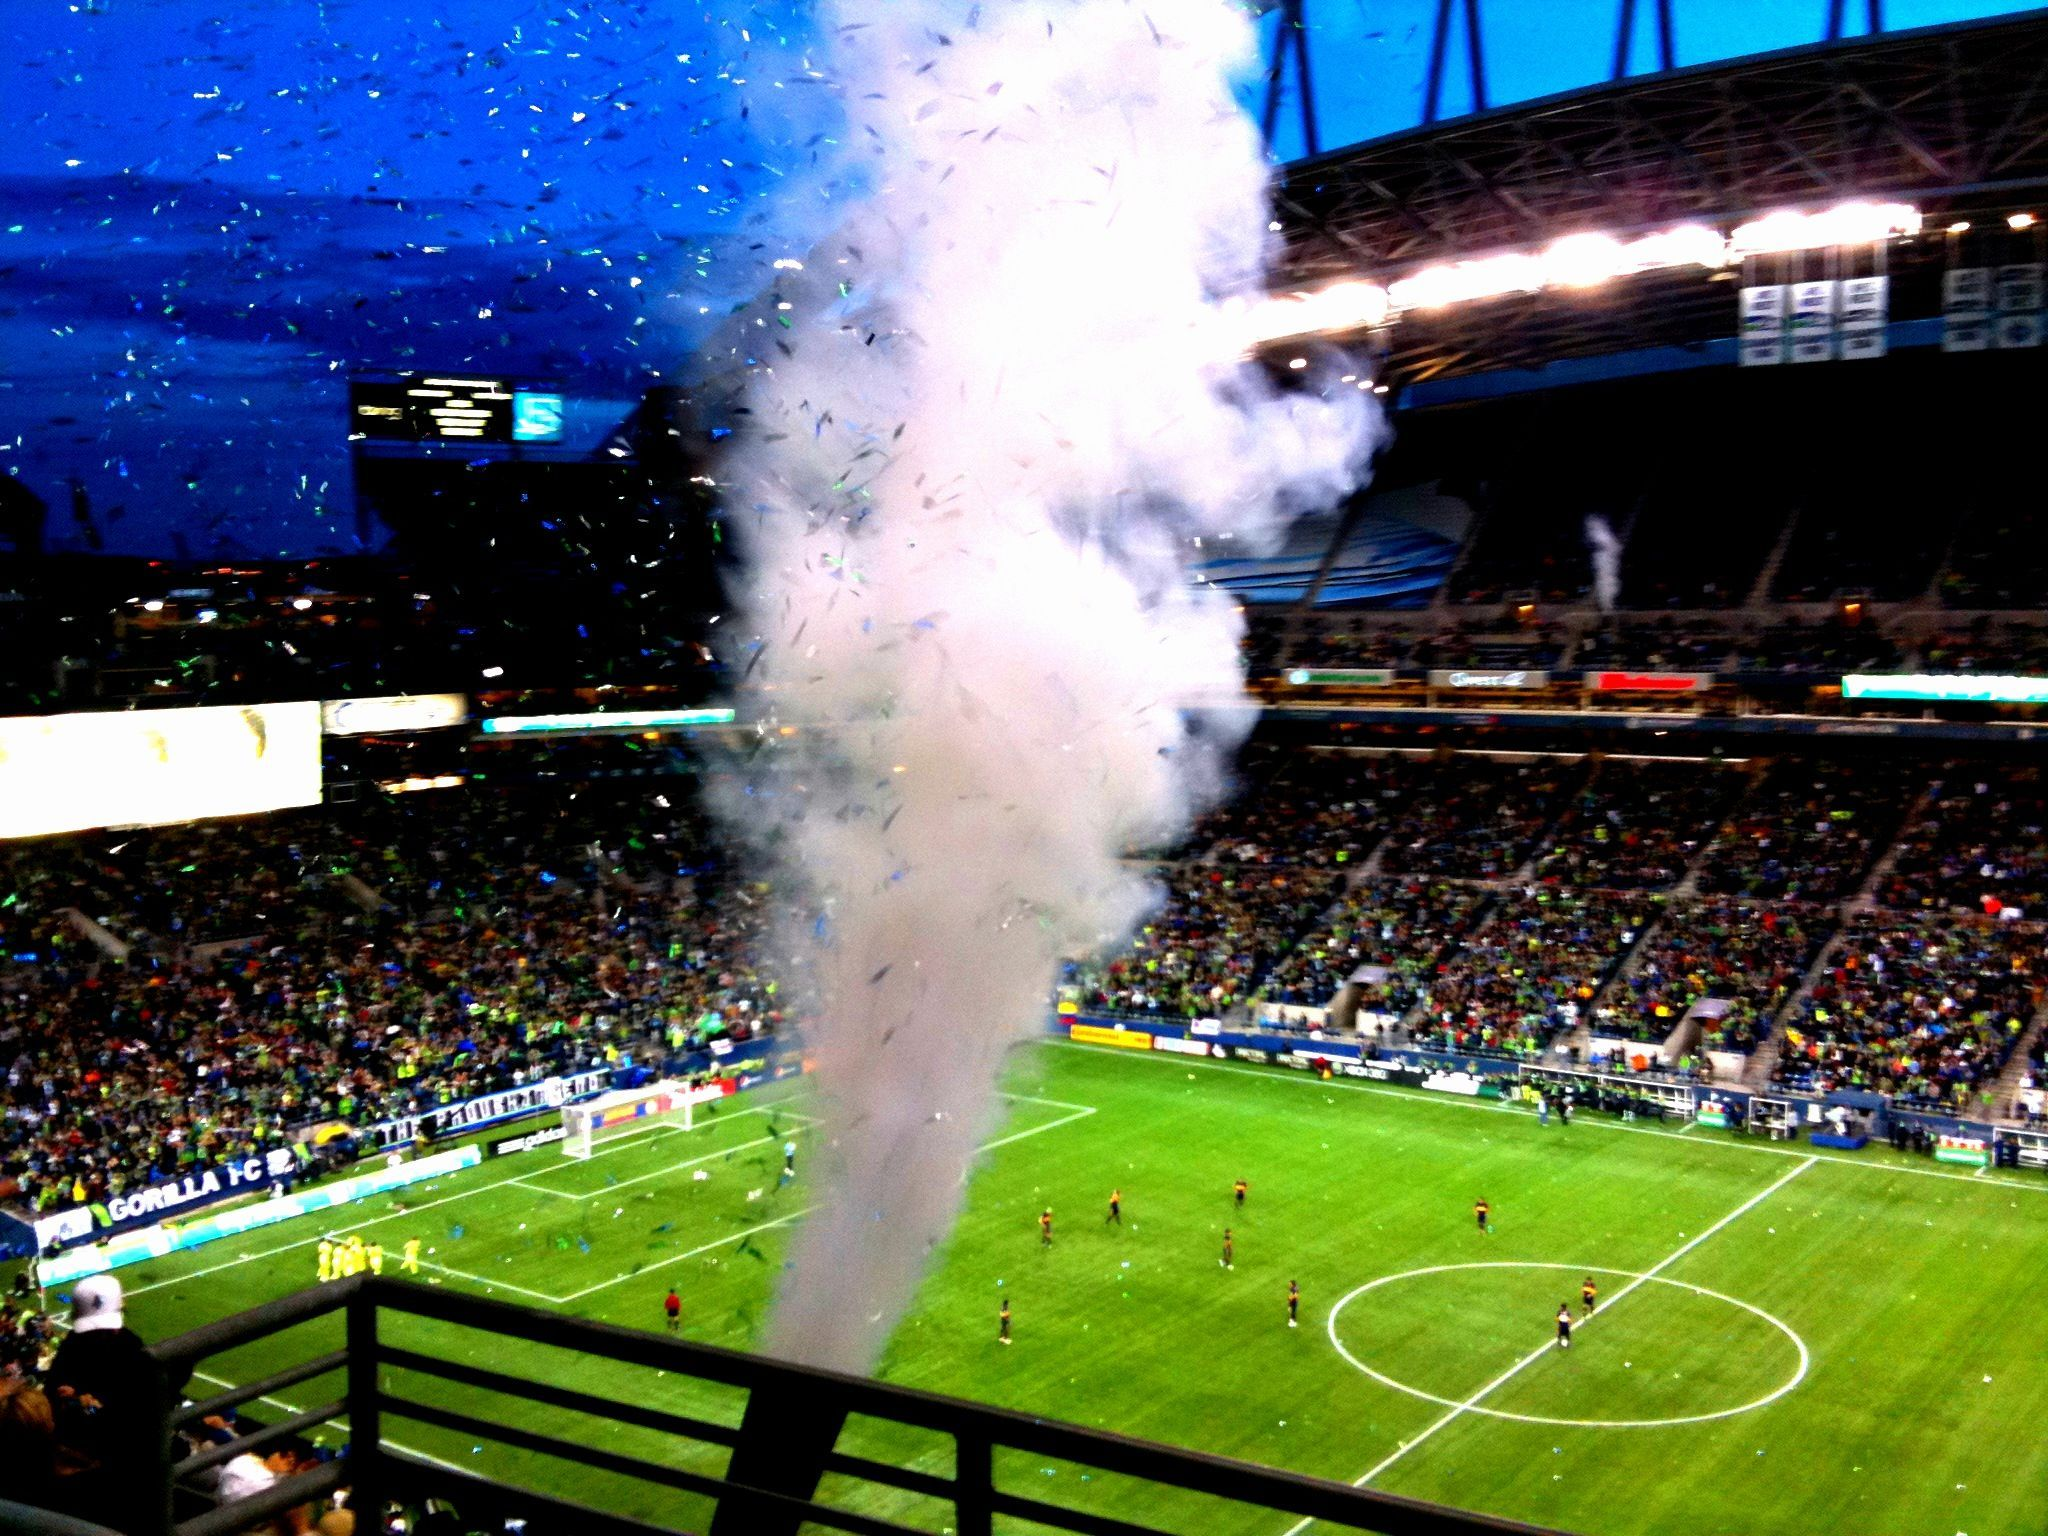 Sounders Goal